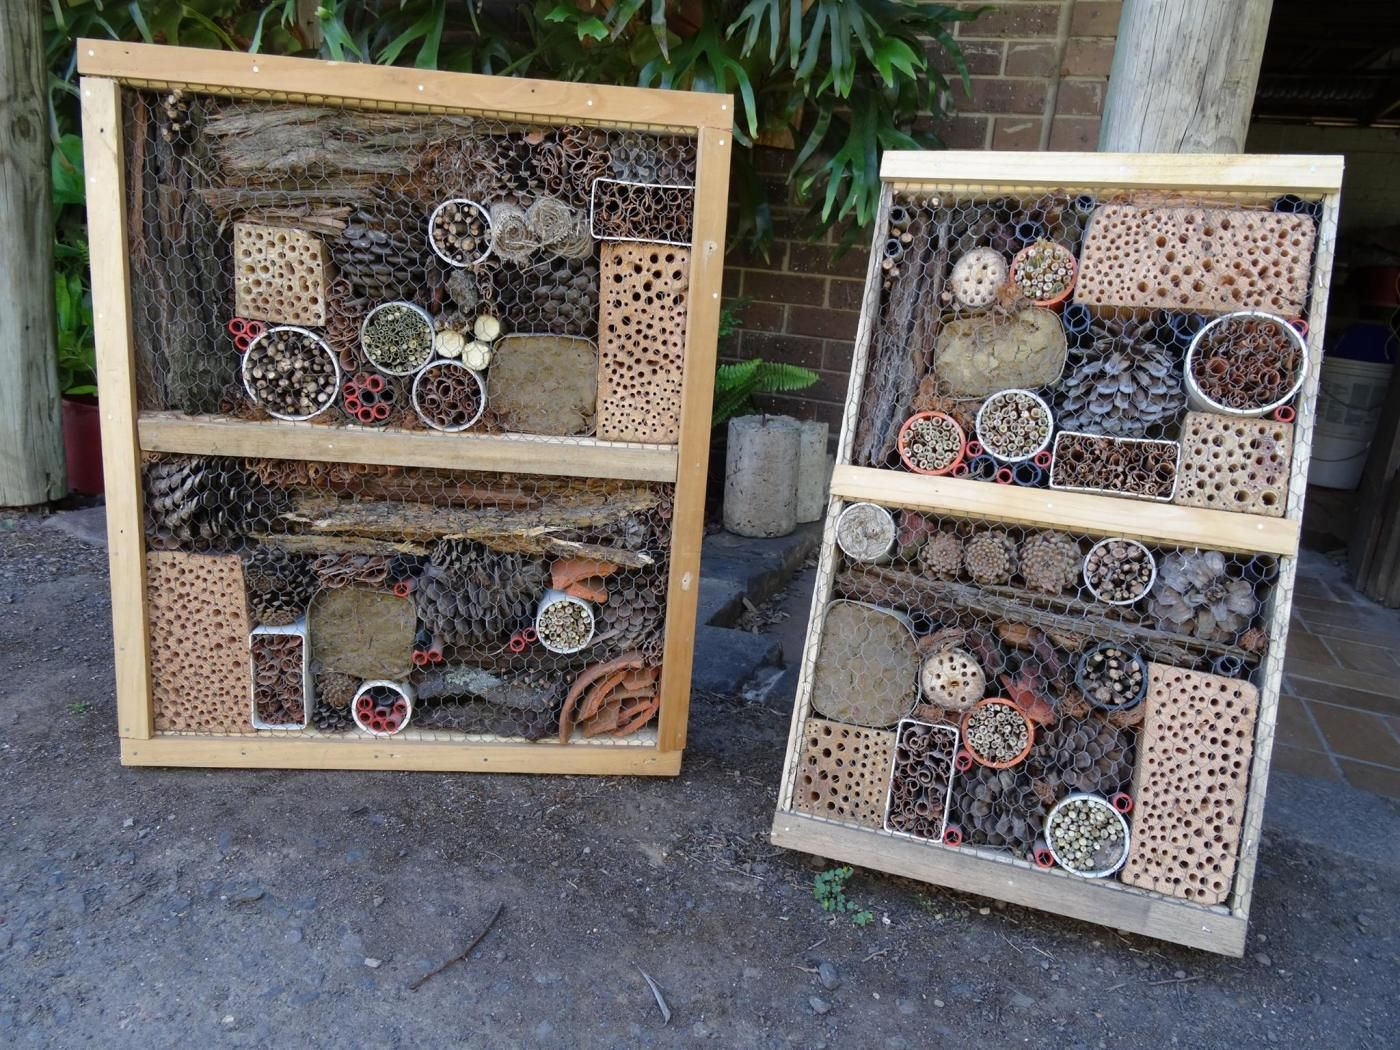 How to make an insect hotel - by Althea from the ...